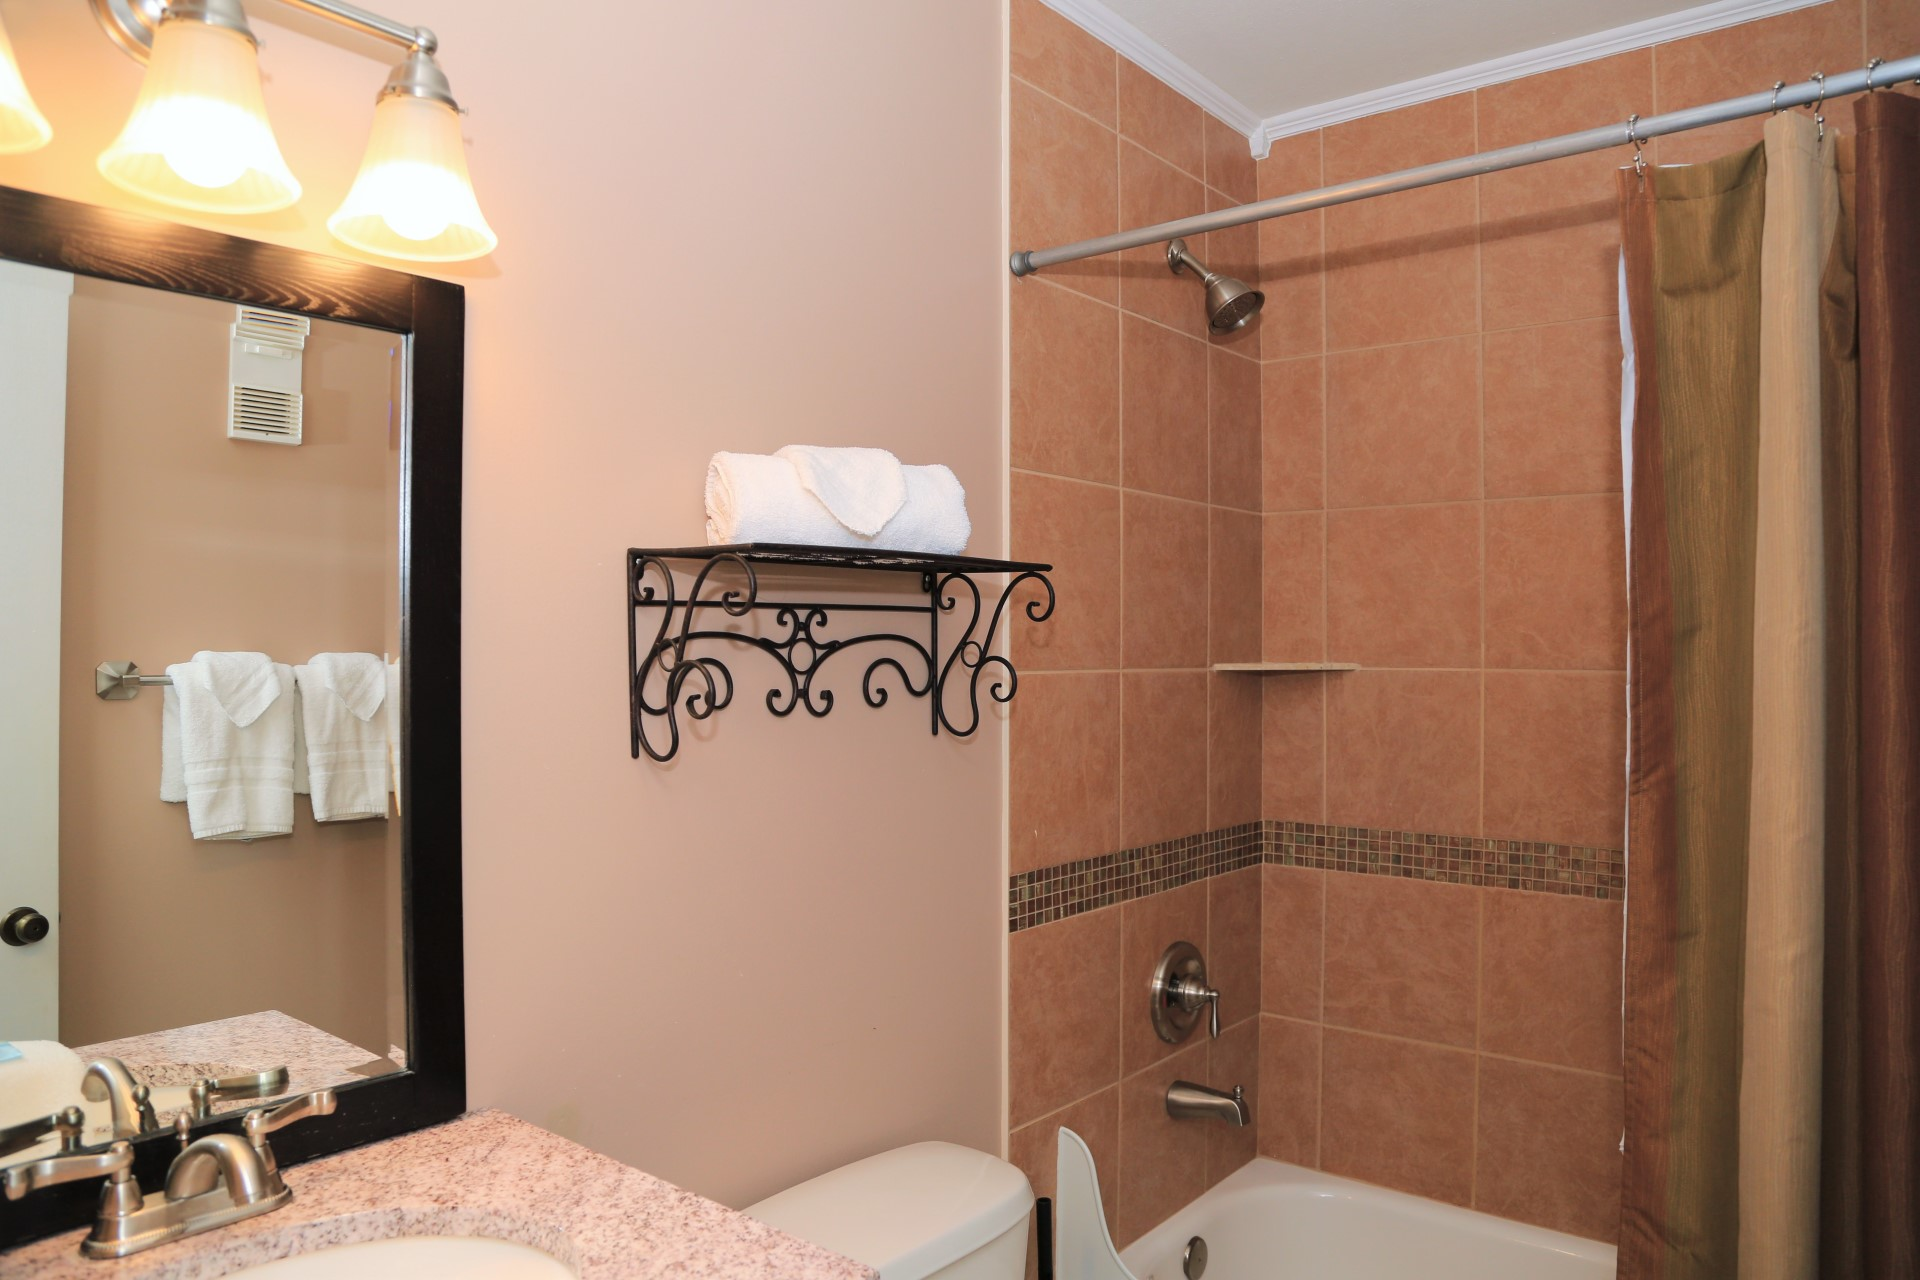 Renovated second bathroom is ready for your arrival with sta